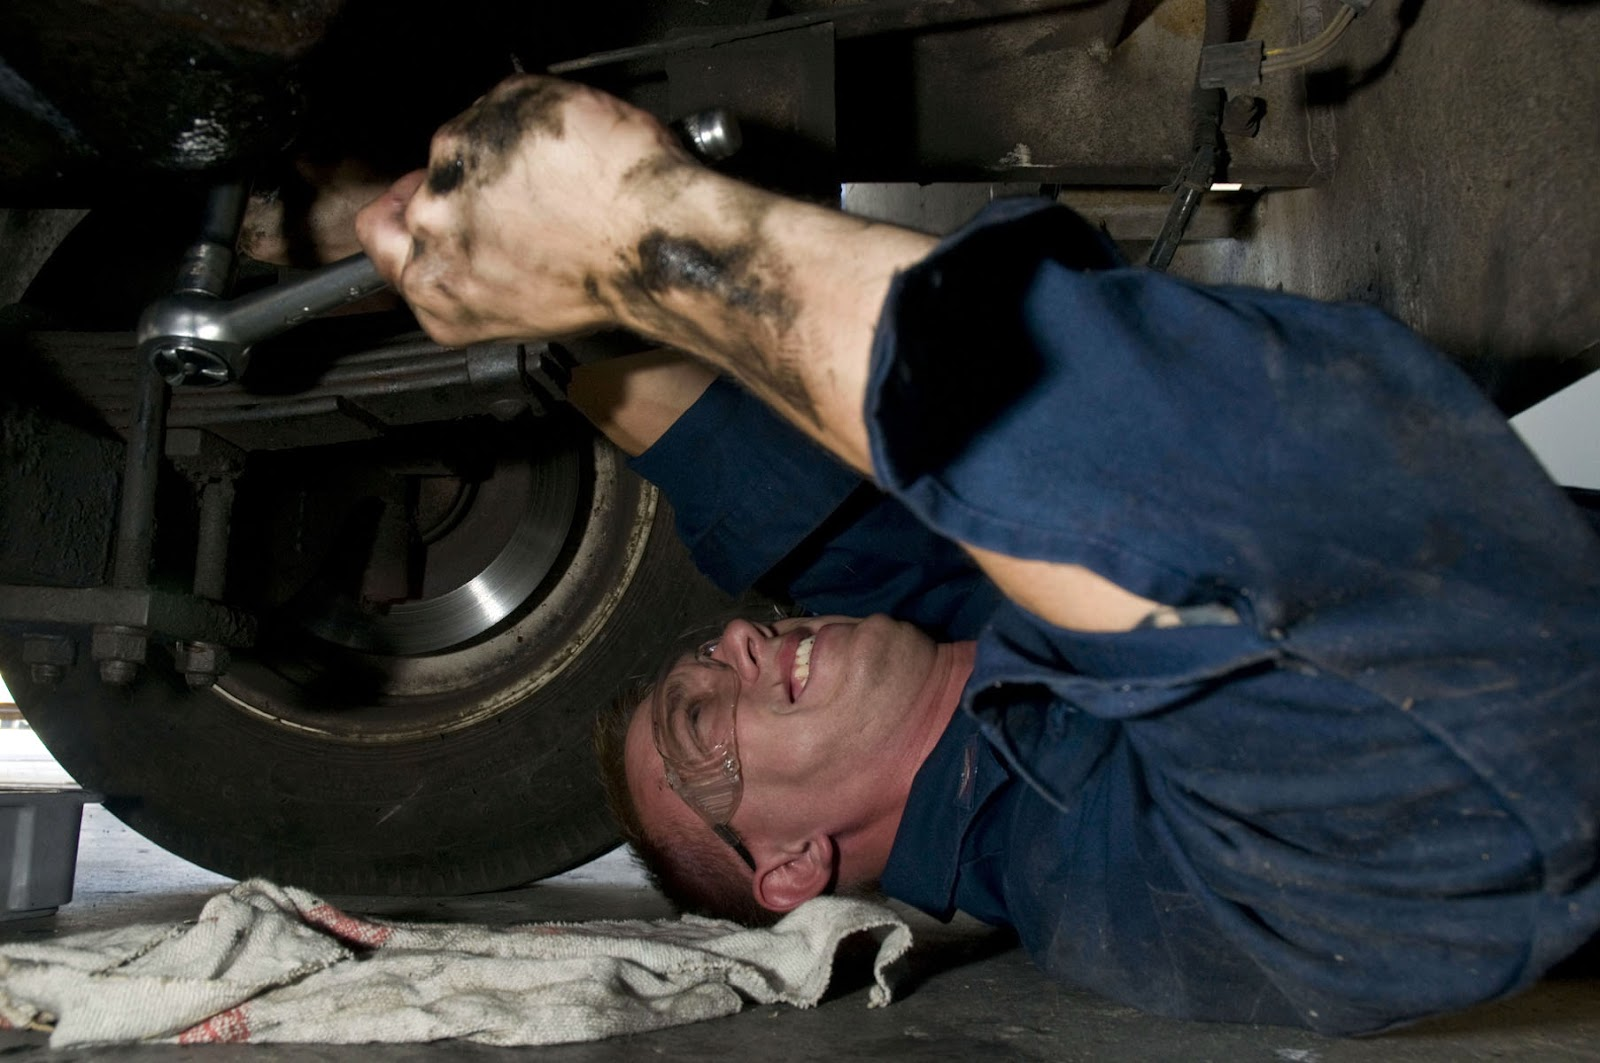 US_Navy_090701-N-5821P-052_Aviation_Support_Equipment_Technician_3rd_Class_Tony_Perkins_performs_a_routine_oil_change_to_a_42_Tow_Tractor.jpg